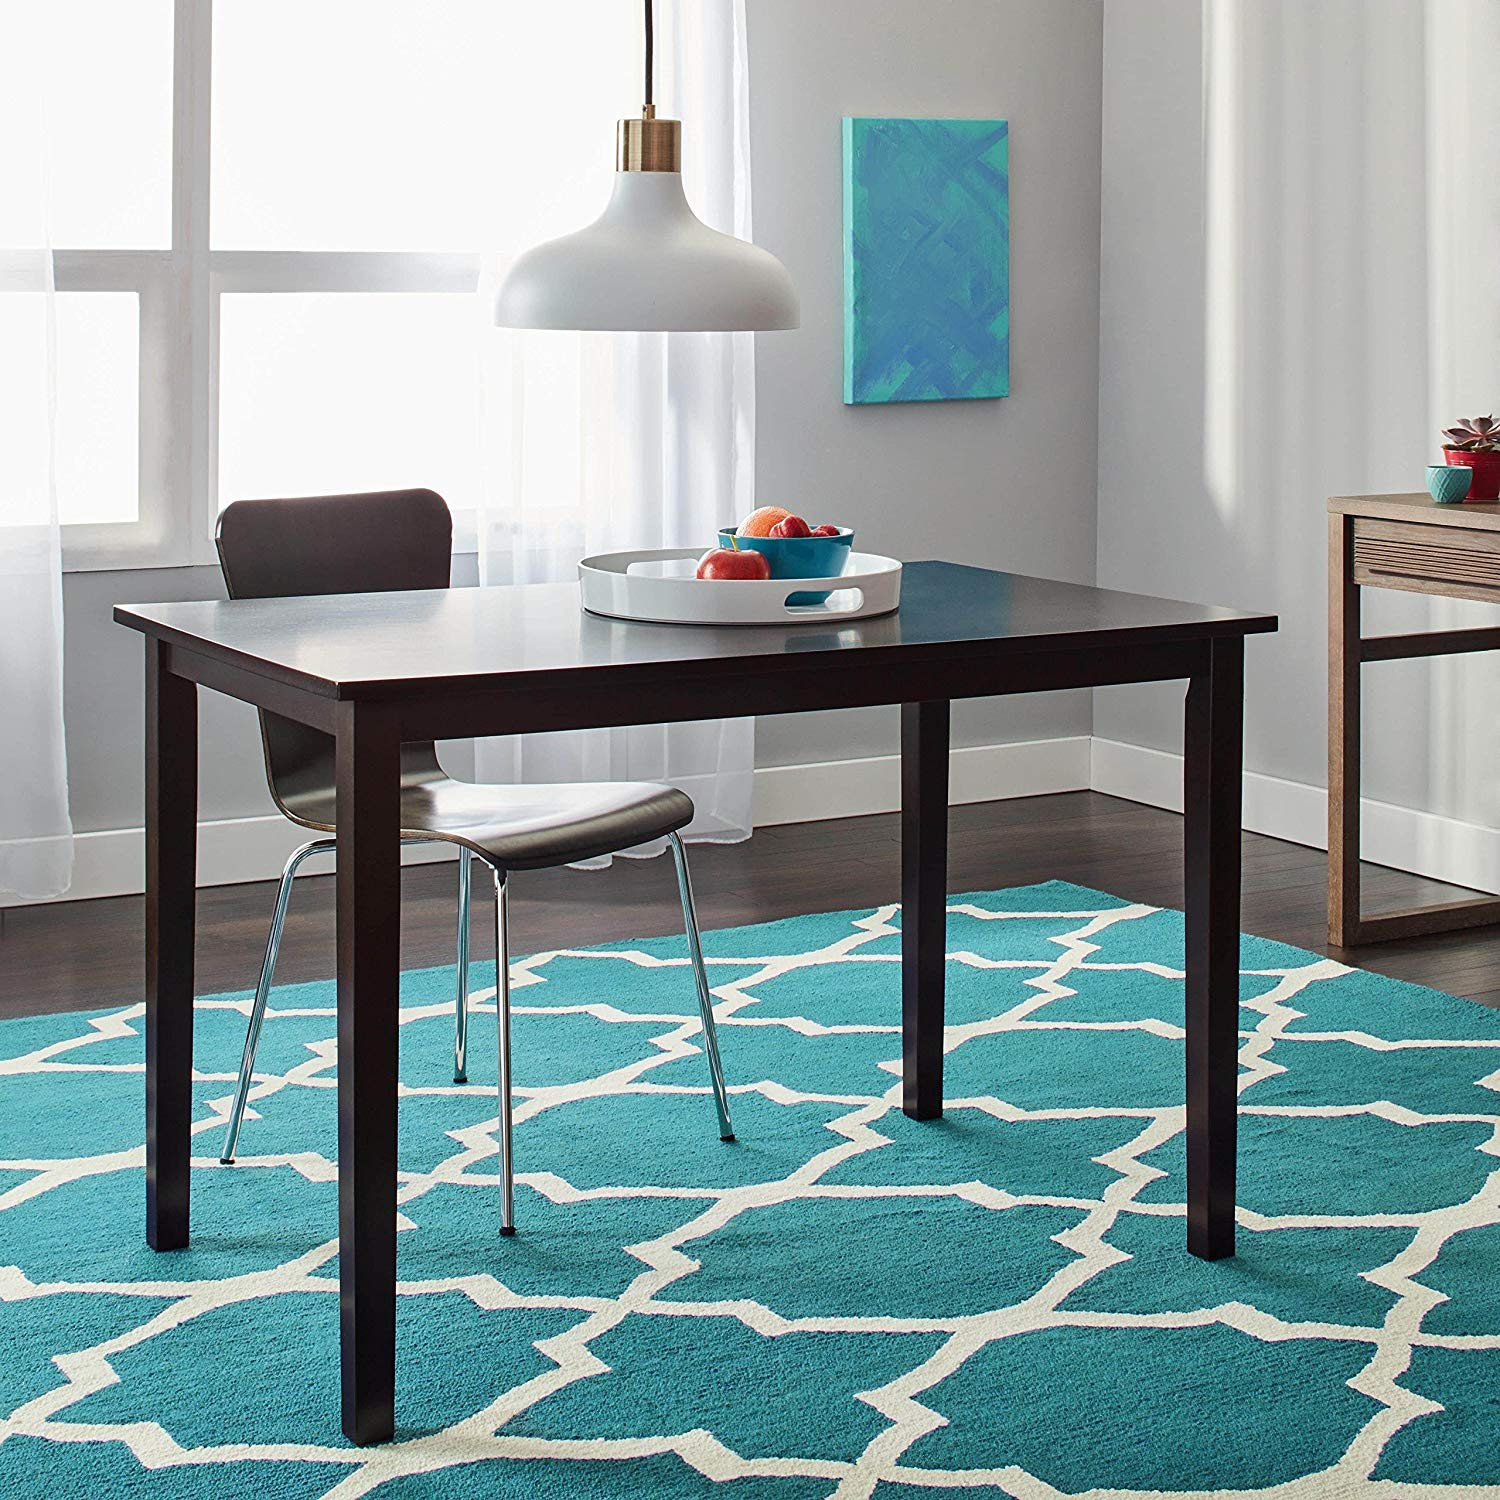 Contemporary Rectangle Dining Table, Functional, Constructed of Rubber Wood, Marked by Simplicity, Grace and Durability, Clean, Elegant Lines, Sturdy, Wide Surface Offers Ample Space, Espresso Finish